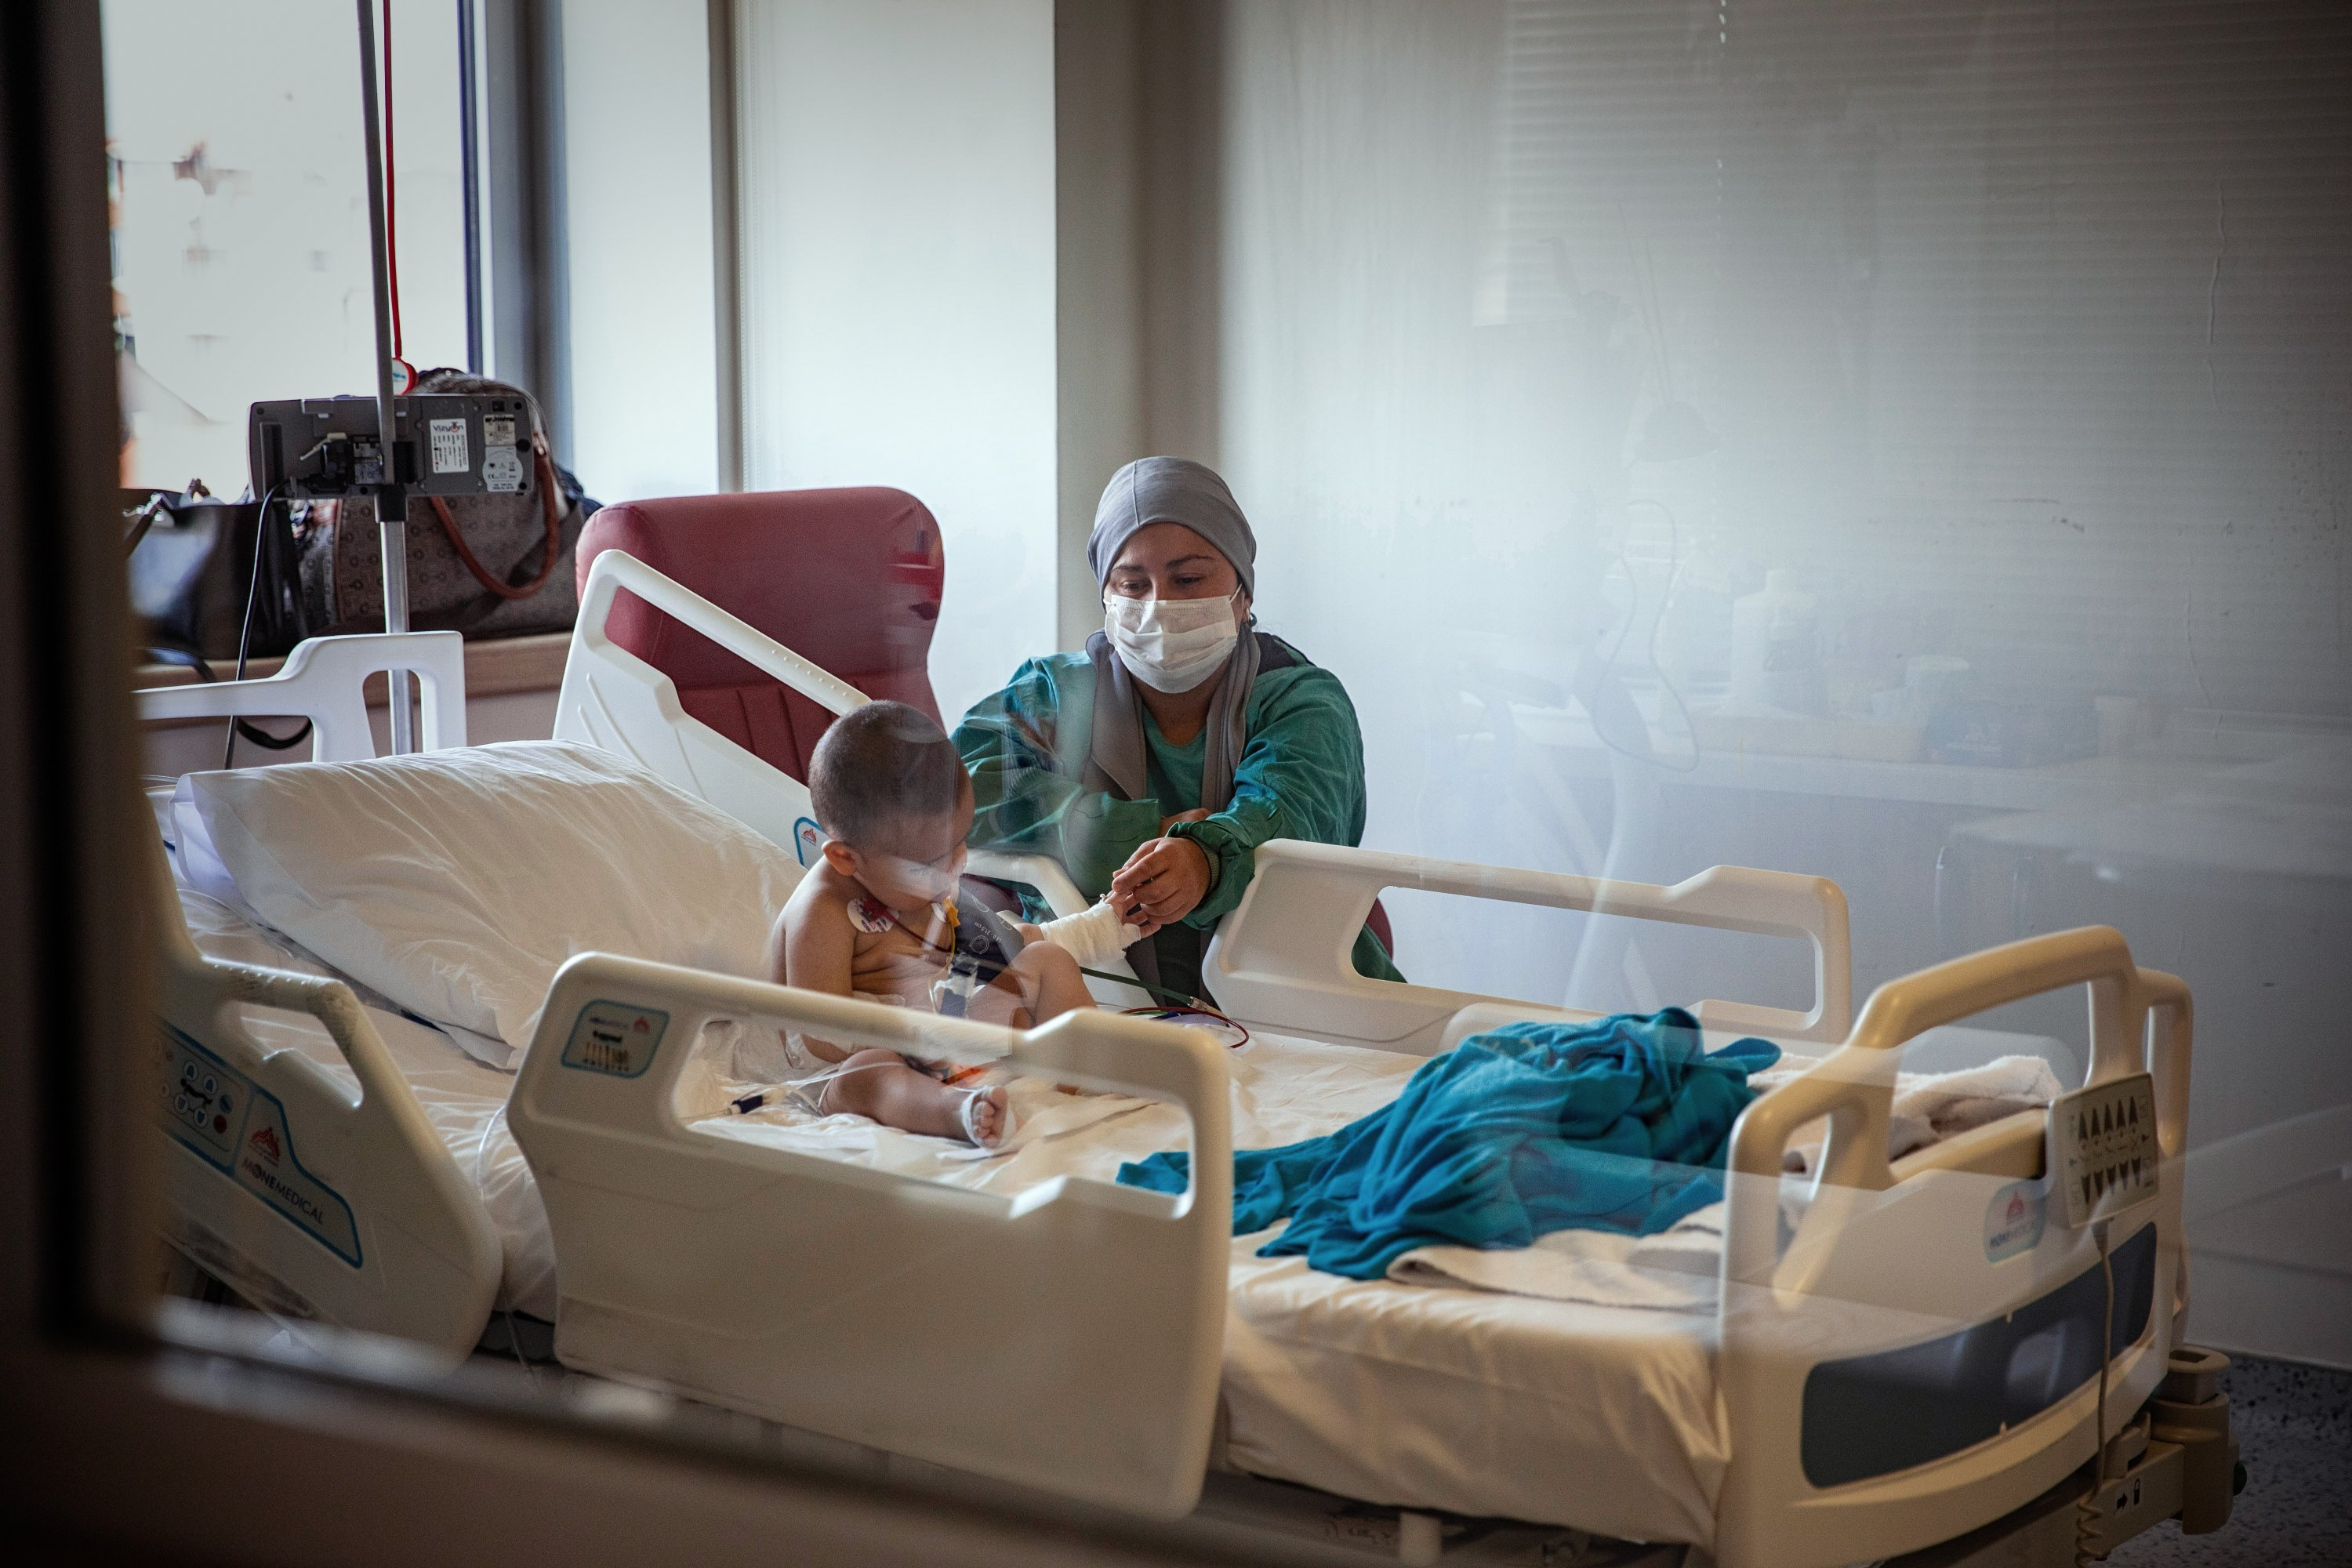 A nurse stands beside the bed of a child patient at the hospital, in Istanbul, Turkey, April 16, 2021. (AA PHOTO)